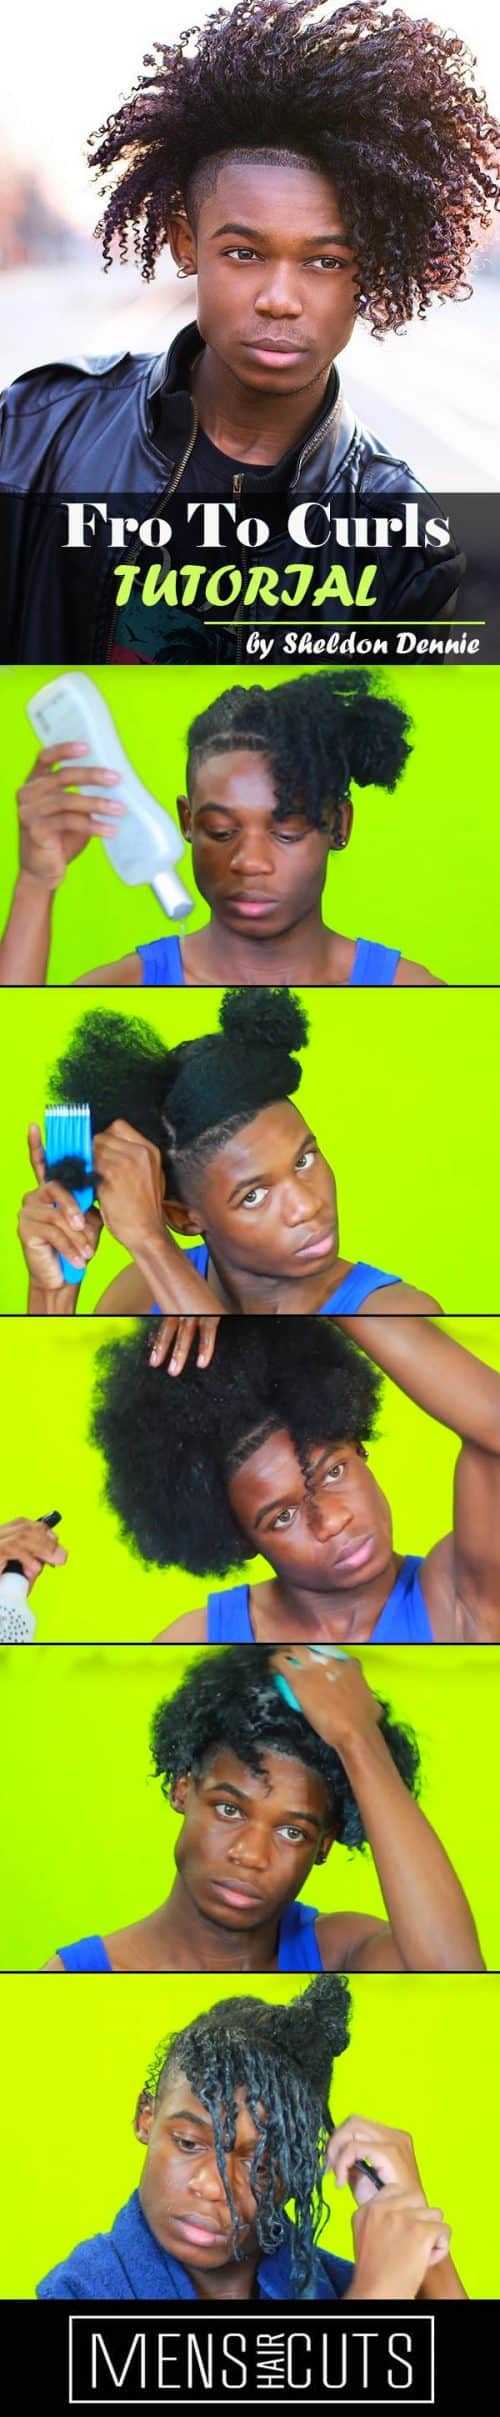 How To Make Textured Curls #texturedcurls #tutorial #afrohairstyles #blackmenhairstyles